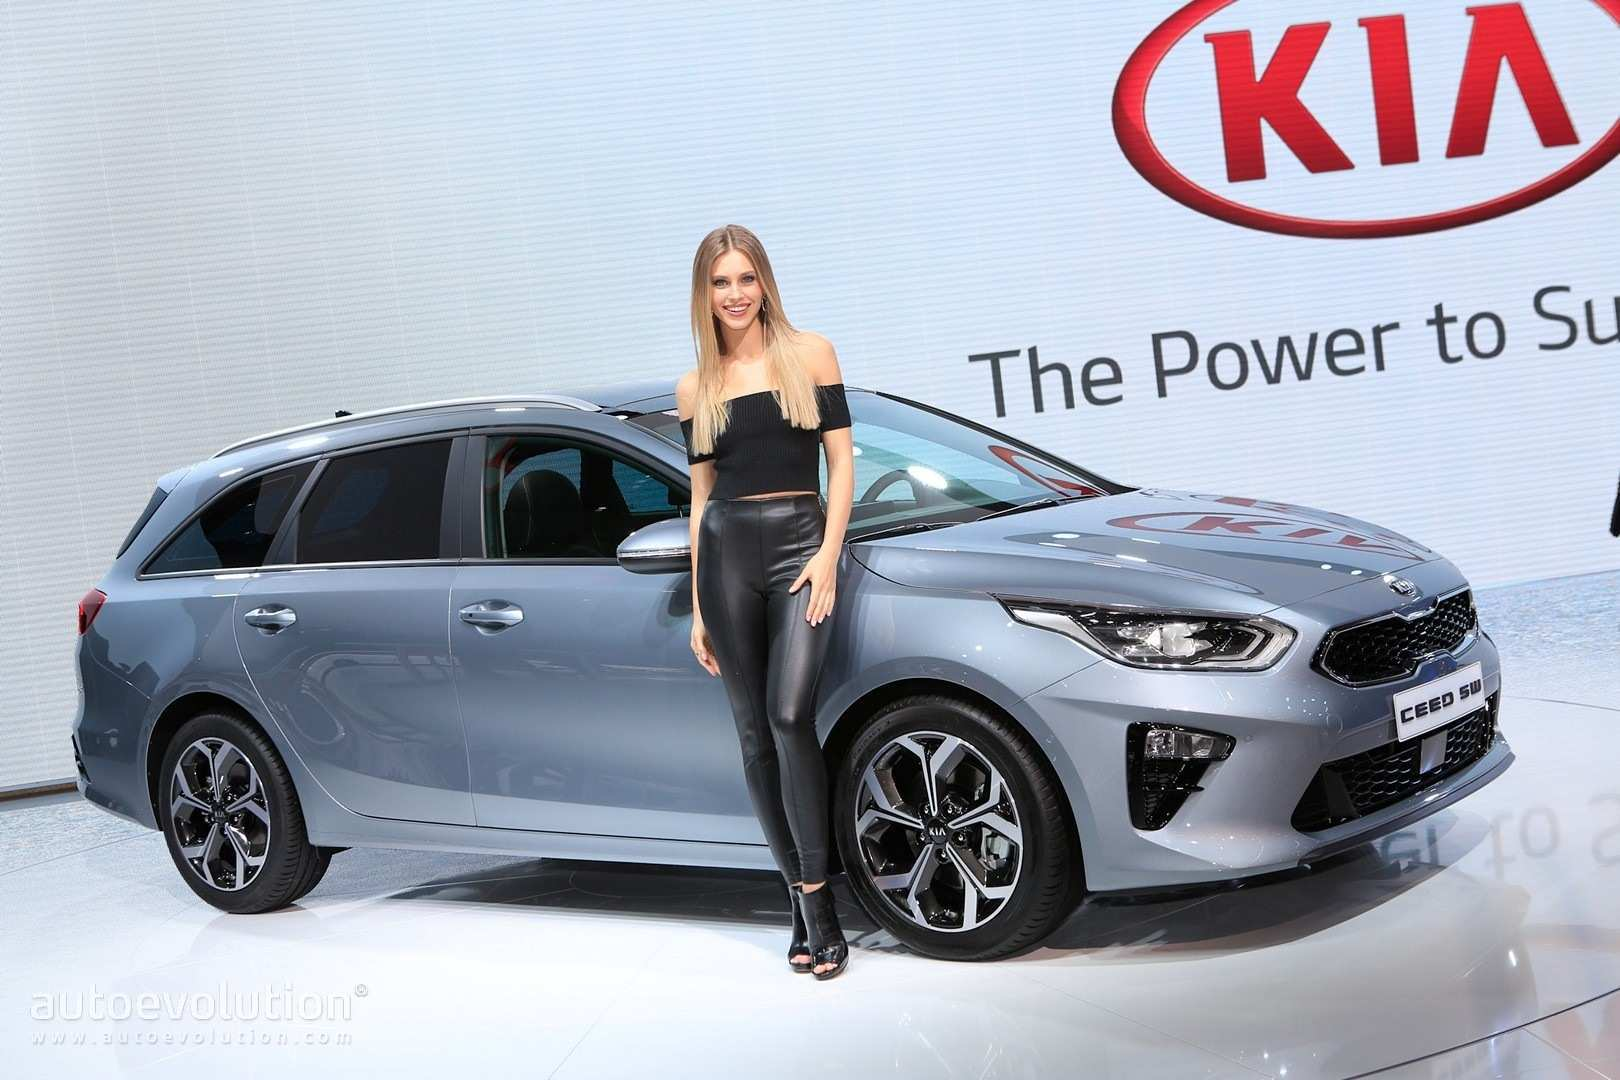 27 The The Kia Ceed 2019 Interior Interior Exterior And Review History by The Kia Ceed 2019 Interior Interior Exterior And Review